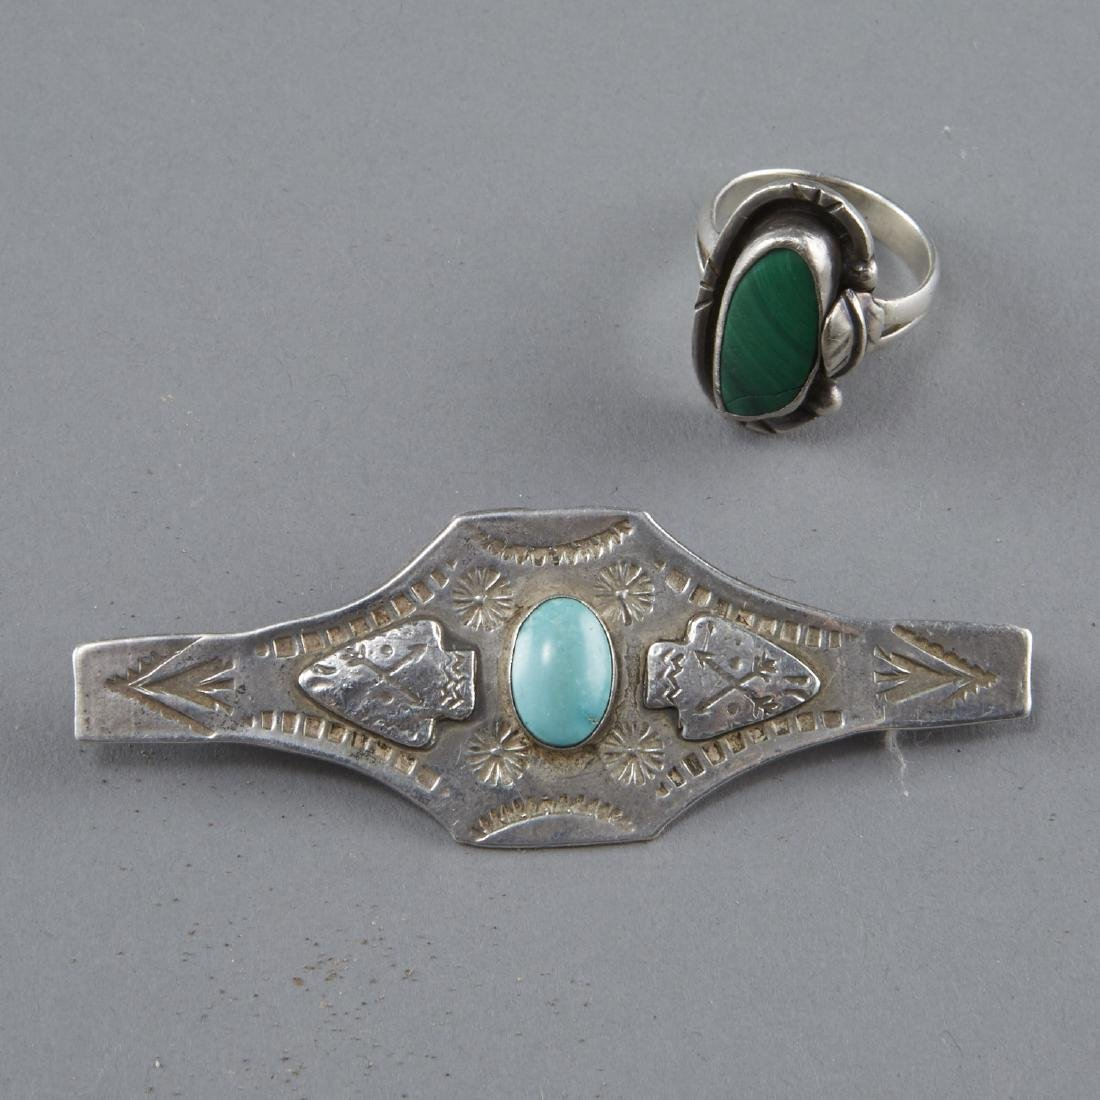 Southwestern Jewelry Silver, Turquoise, etc. - 9